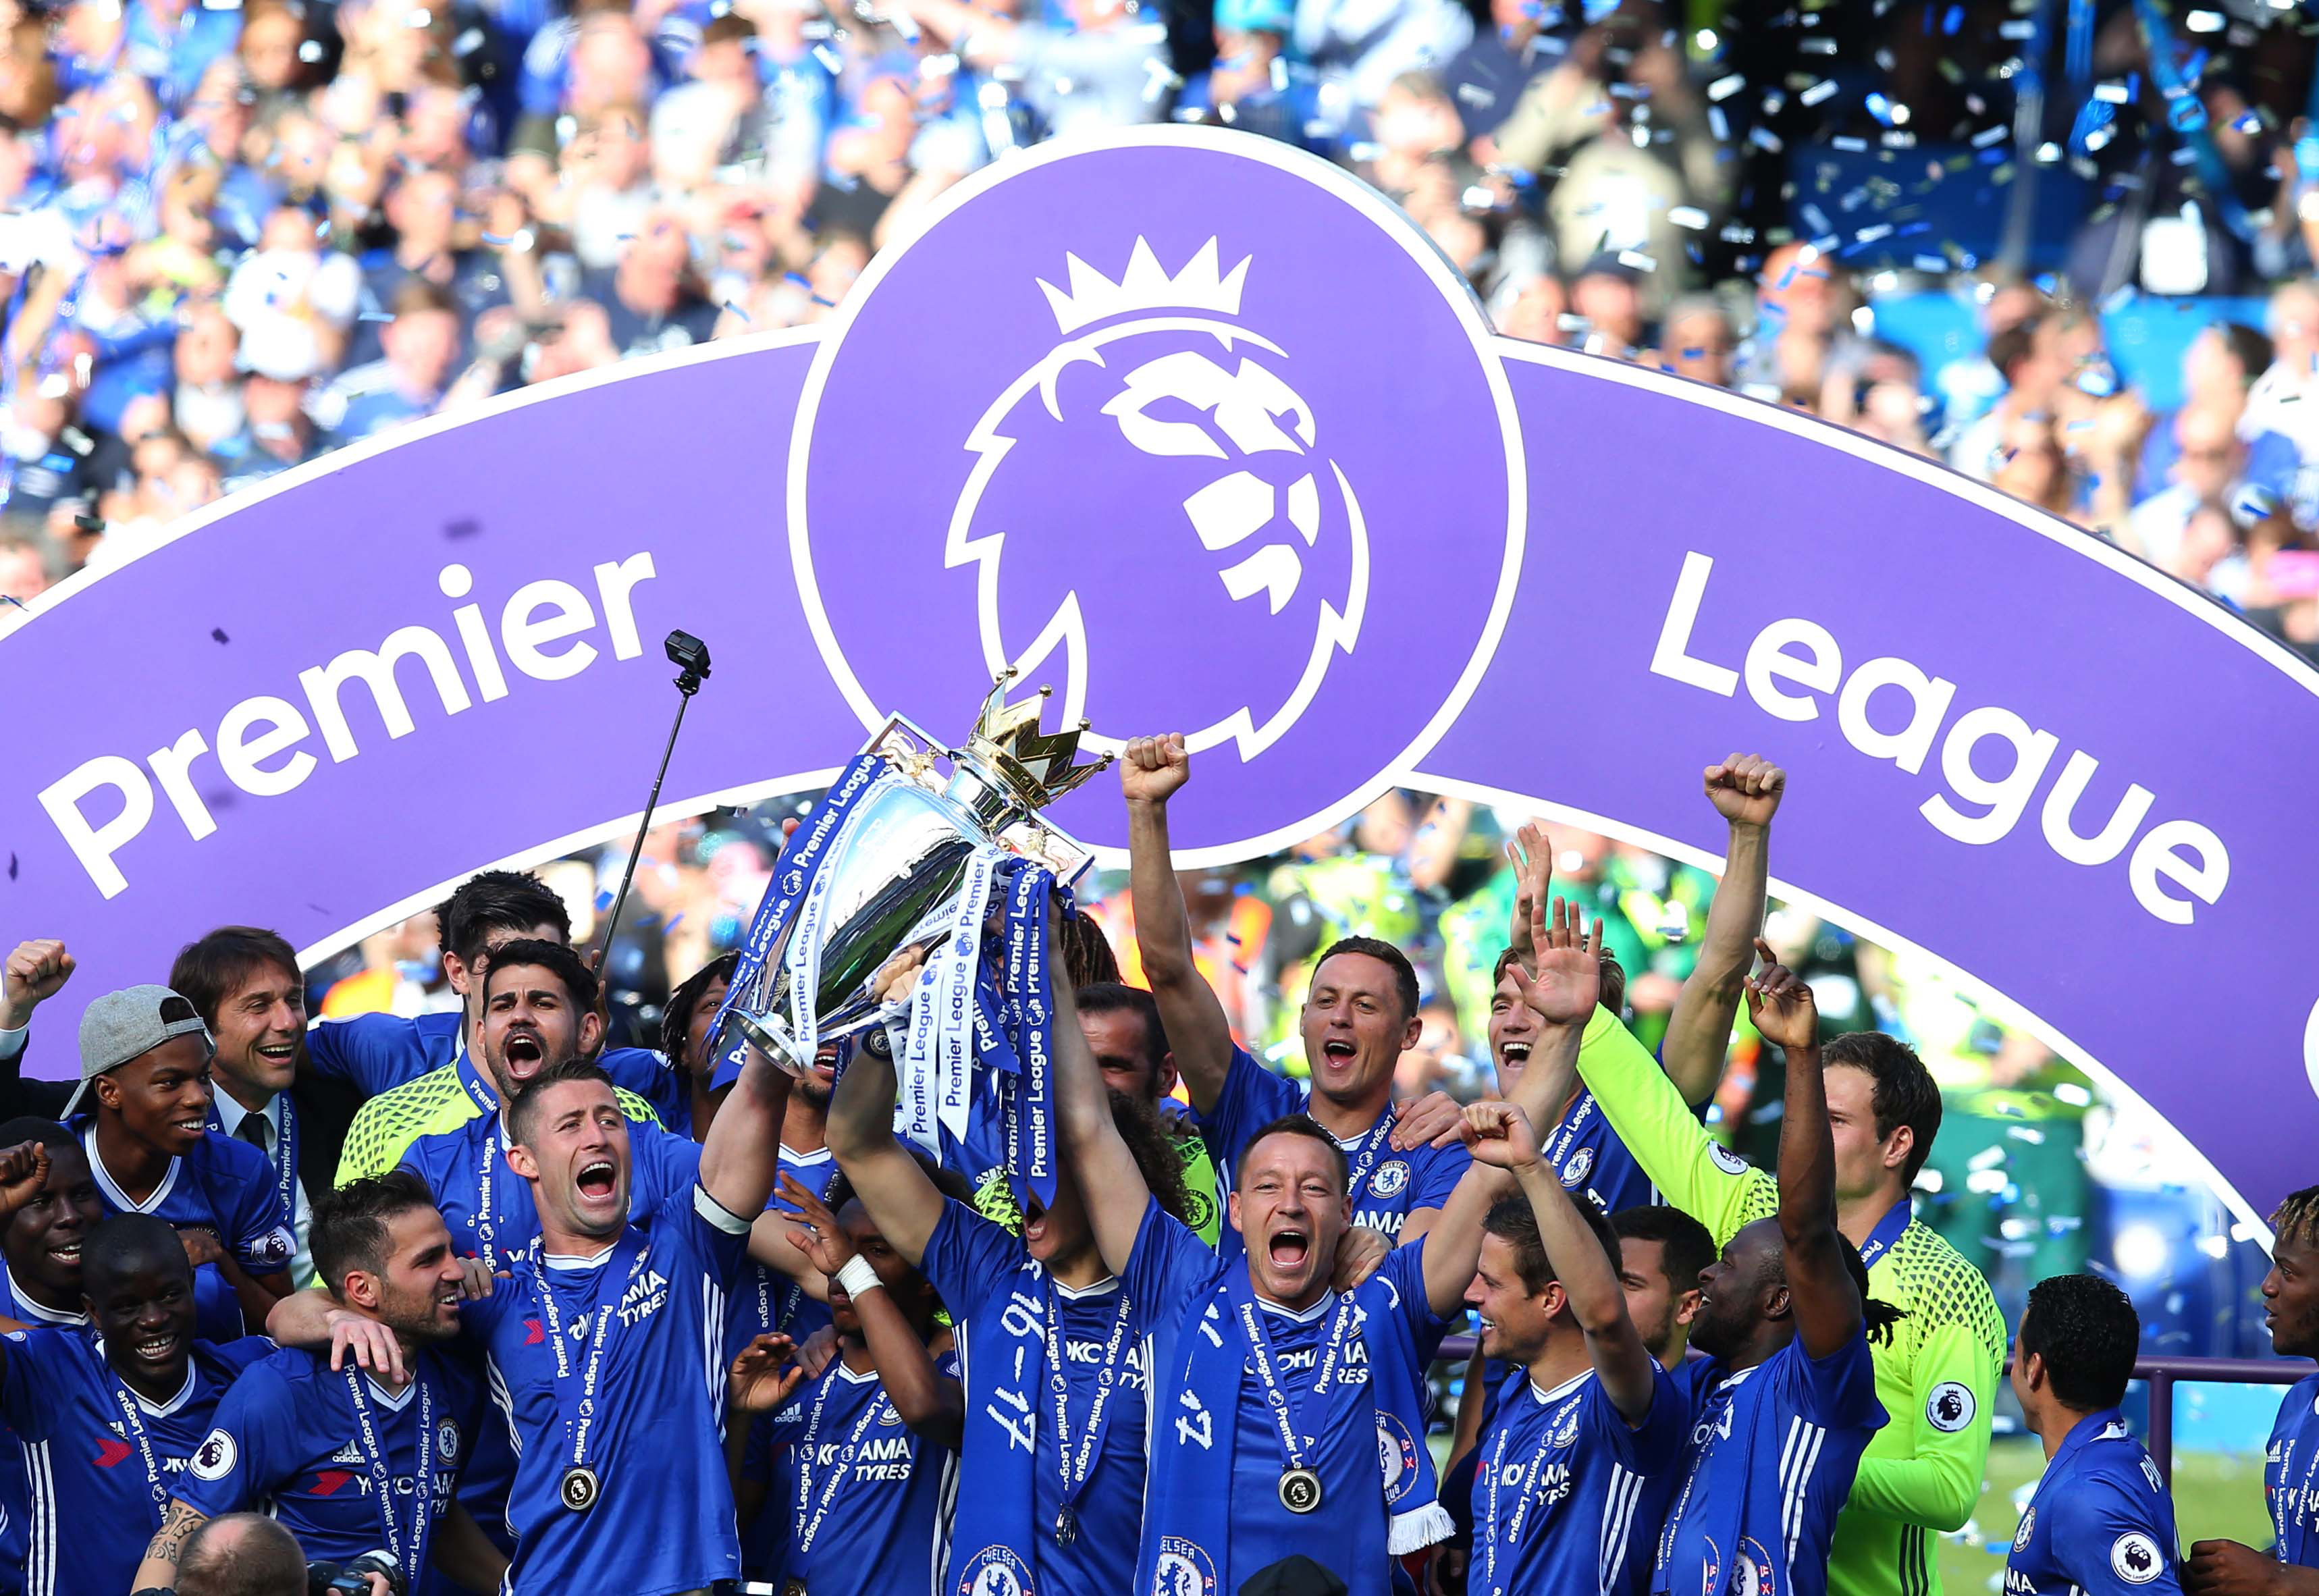 premier league - photo #26